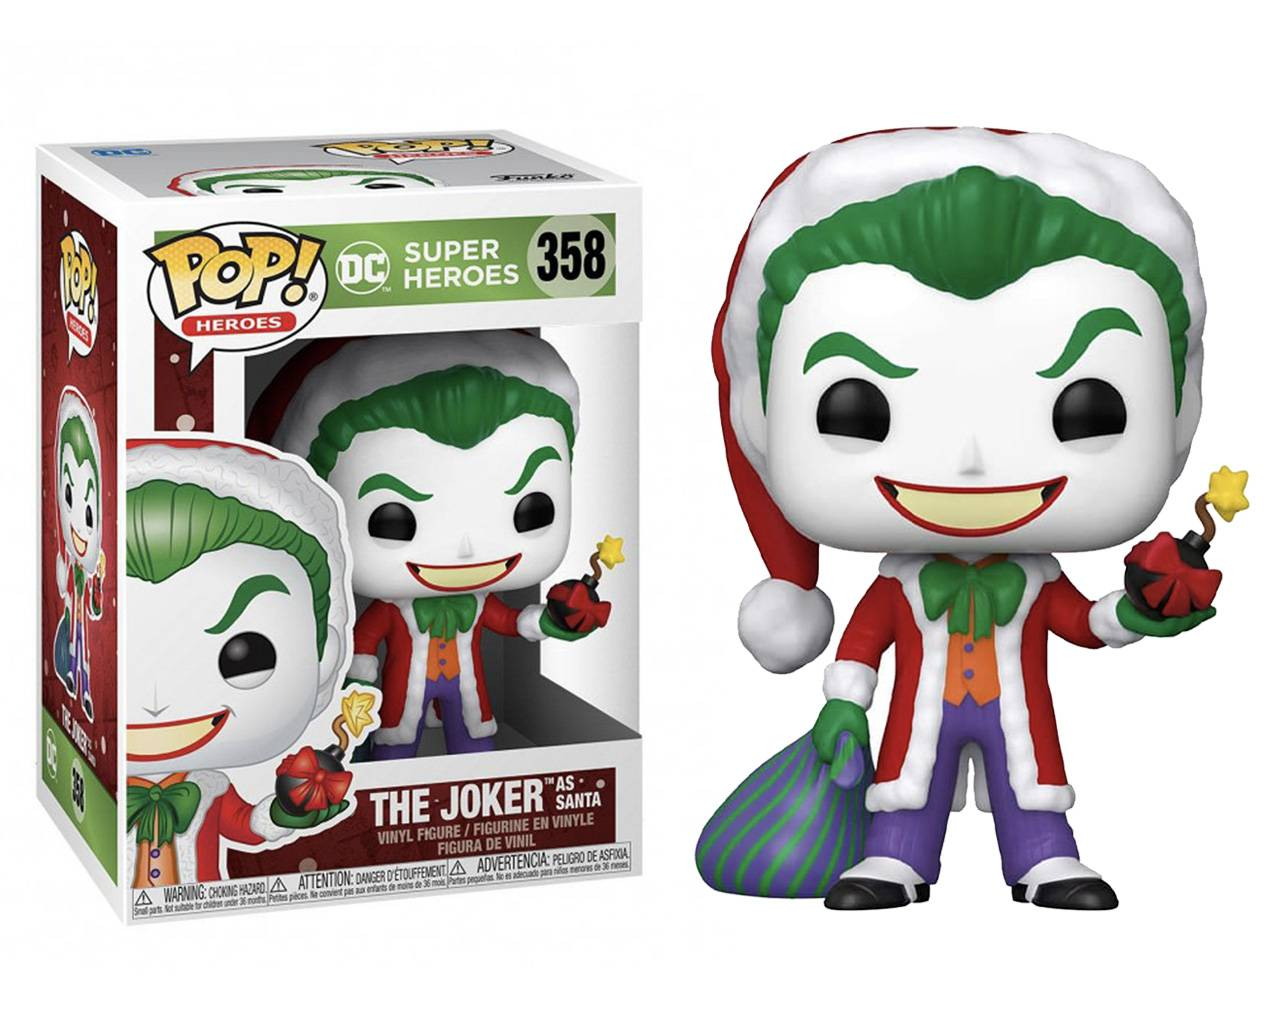 The Joker as Santa Pop! Vinyl